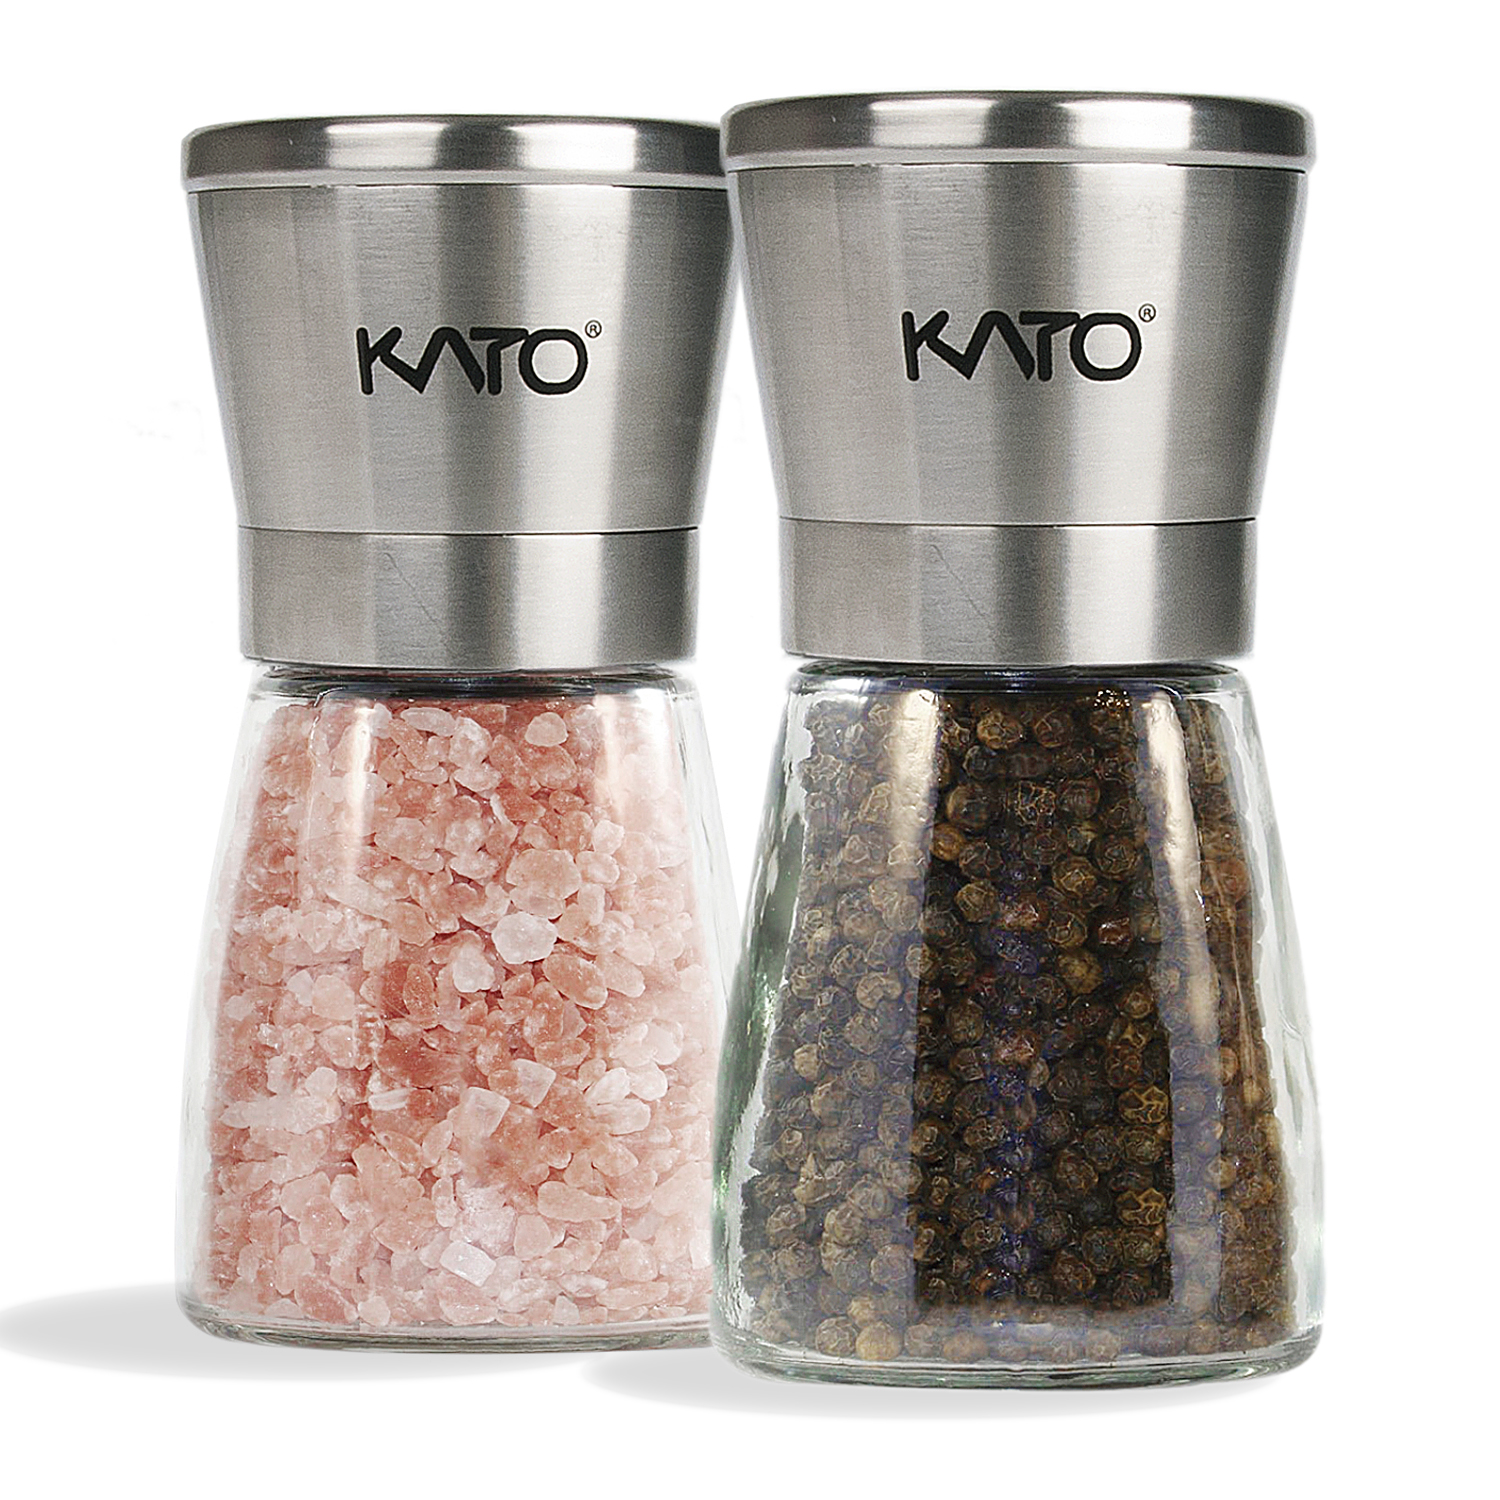 Kato Manual Salt and Pepper Grinder Set, Stainless Steel Top & Glass Body Ceramic Pepper Mills for Himalayan Salt, Pepper and Spices, 2 Pack